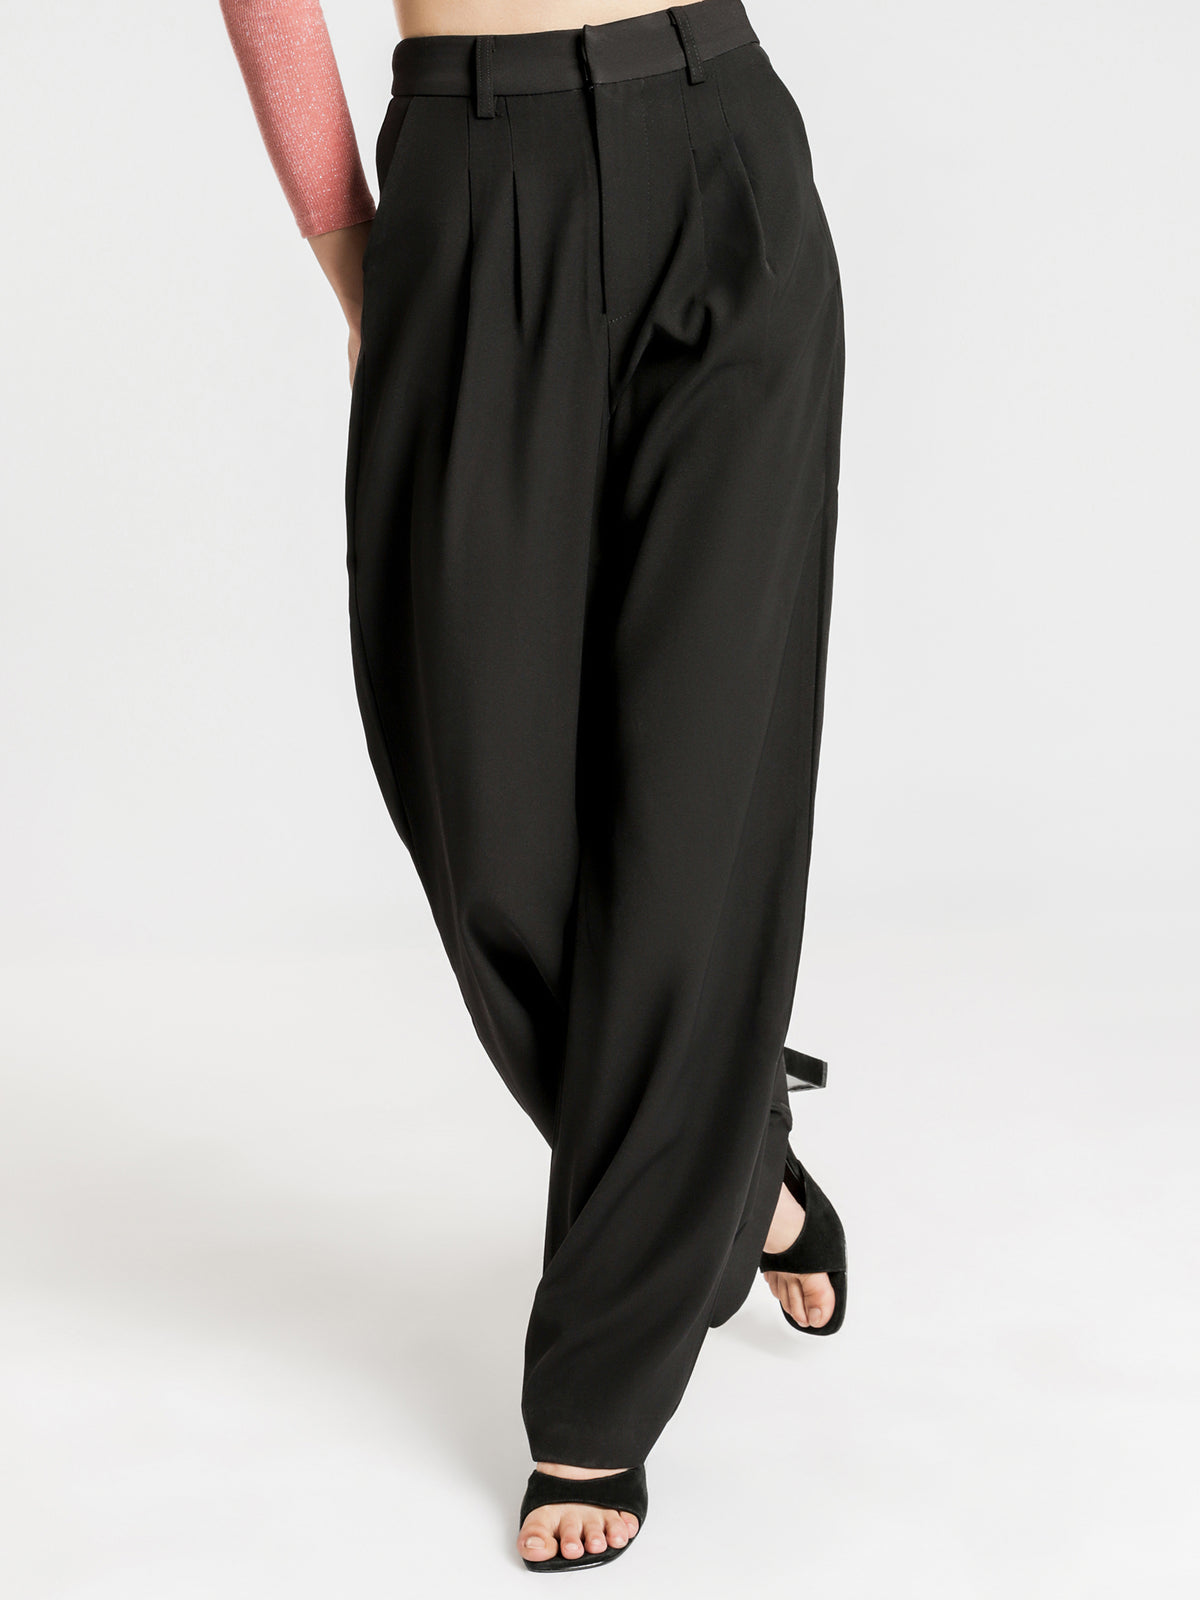 Remy Straight Trousers in Black